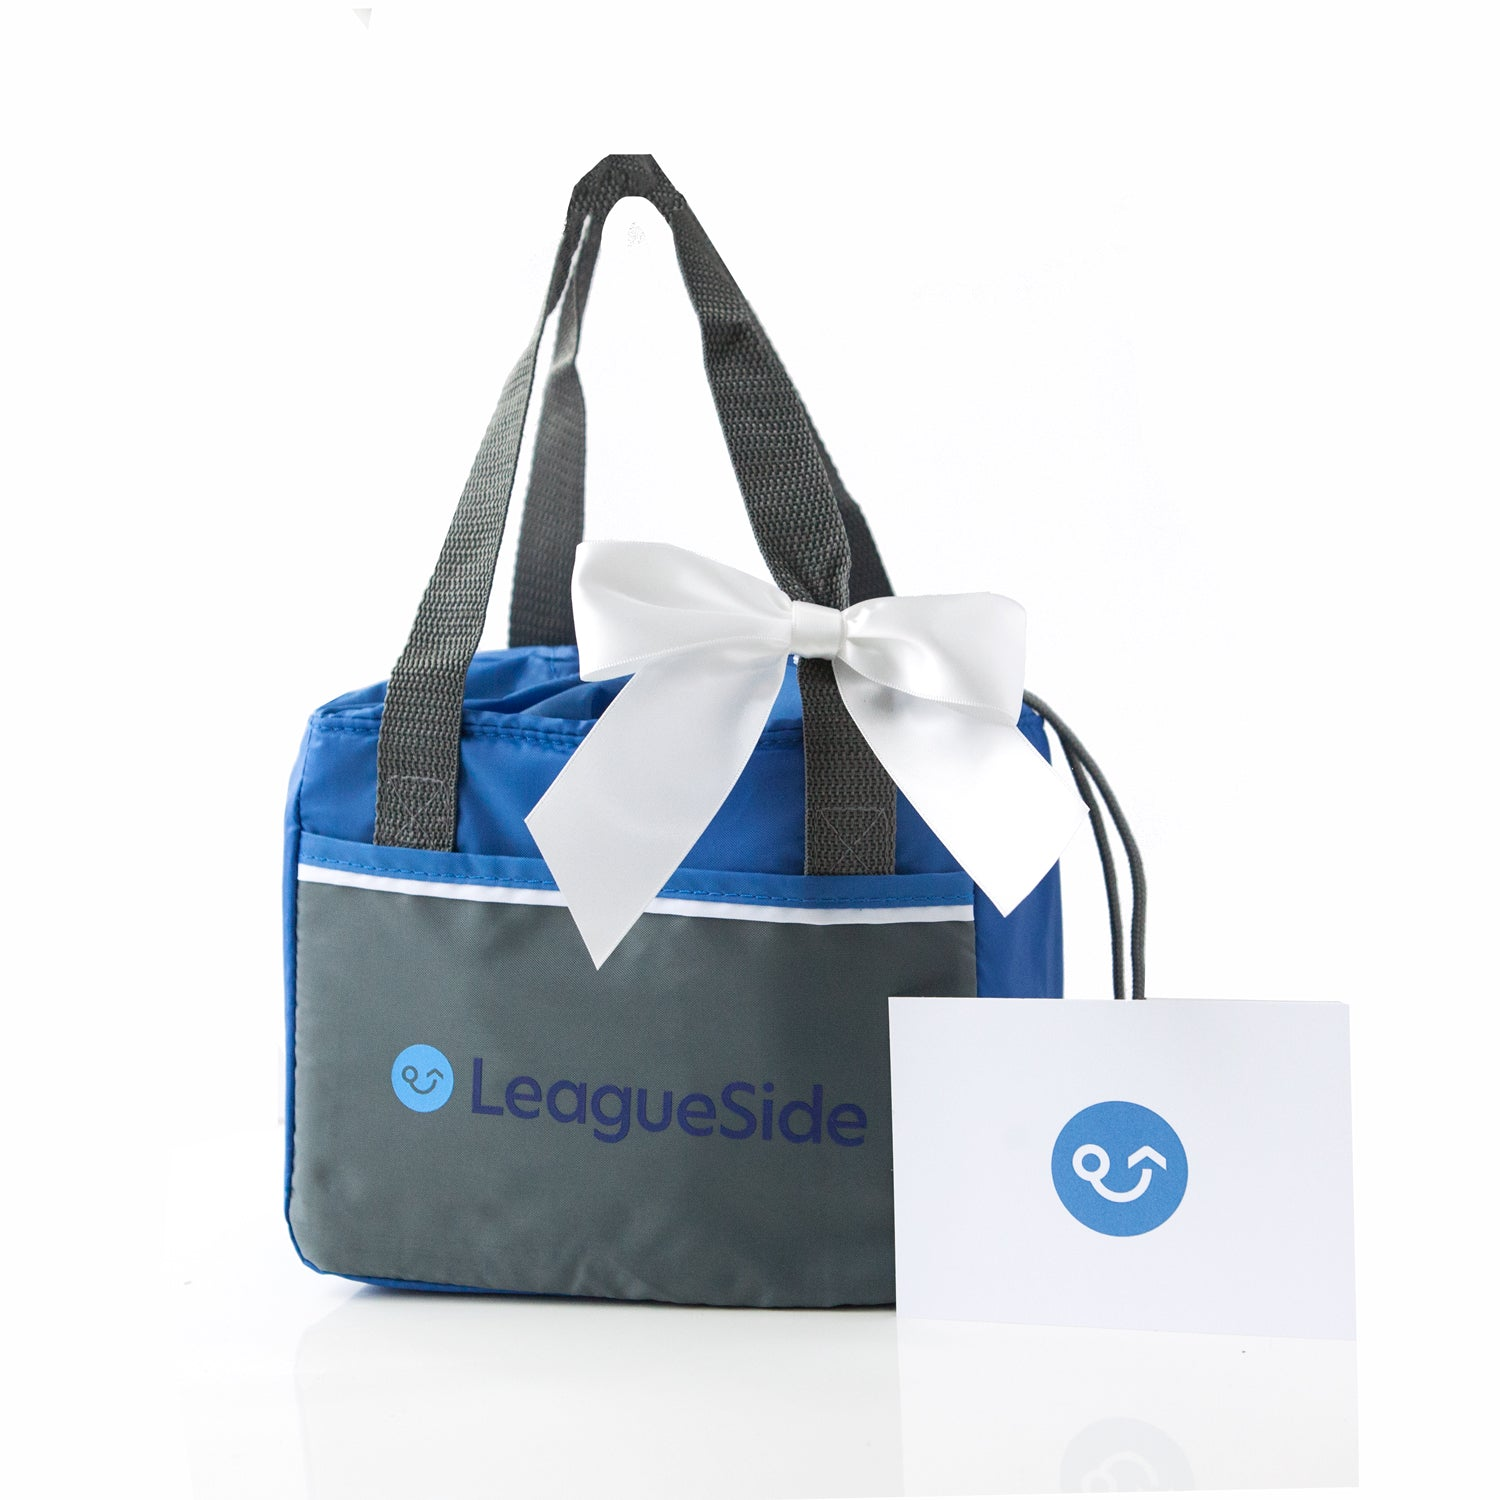 LeagueSide Surprise & Delight Gift